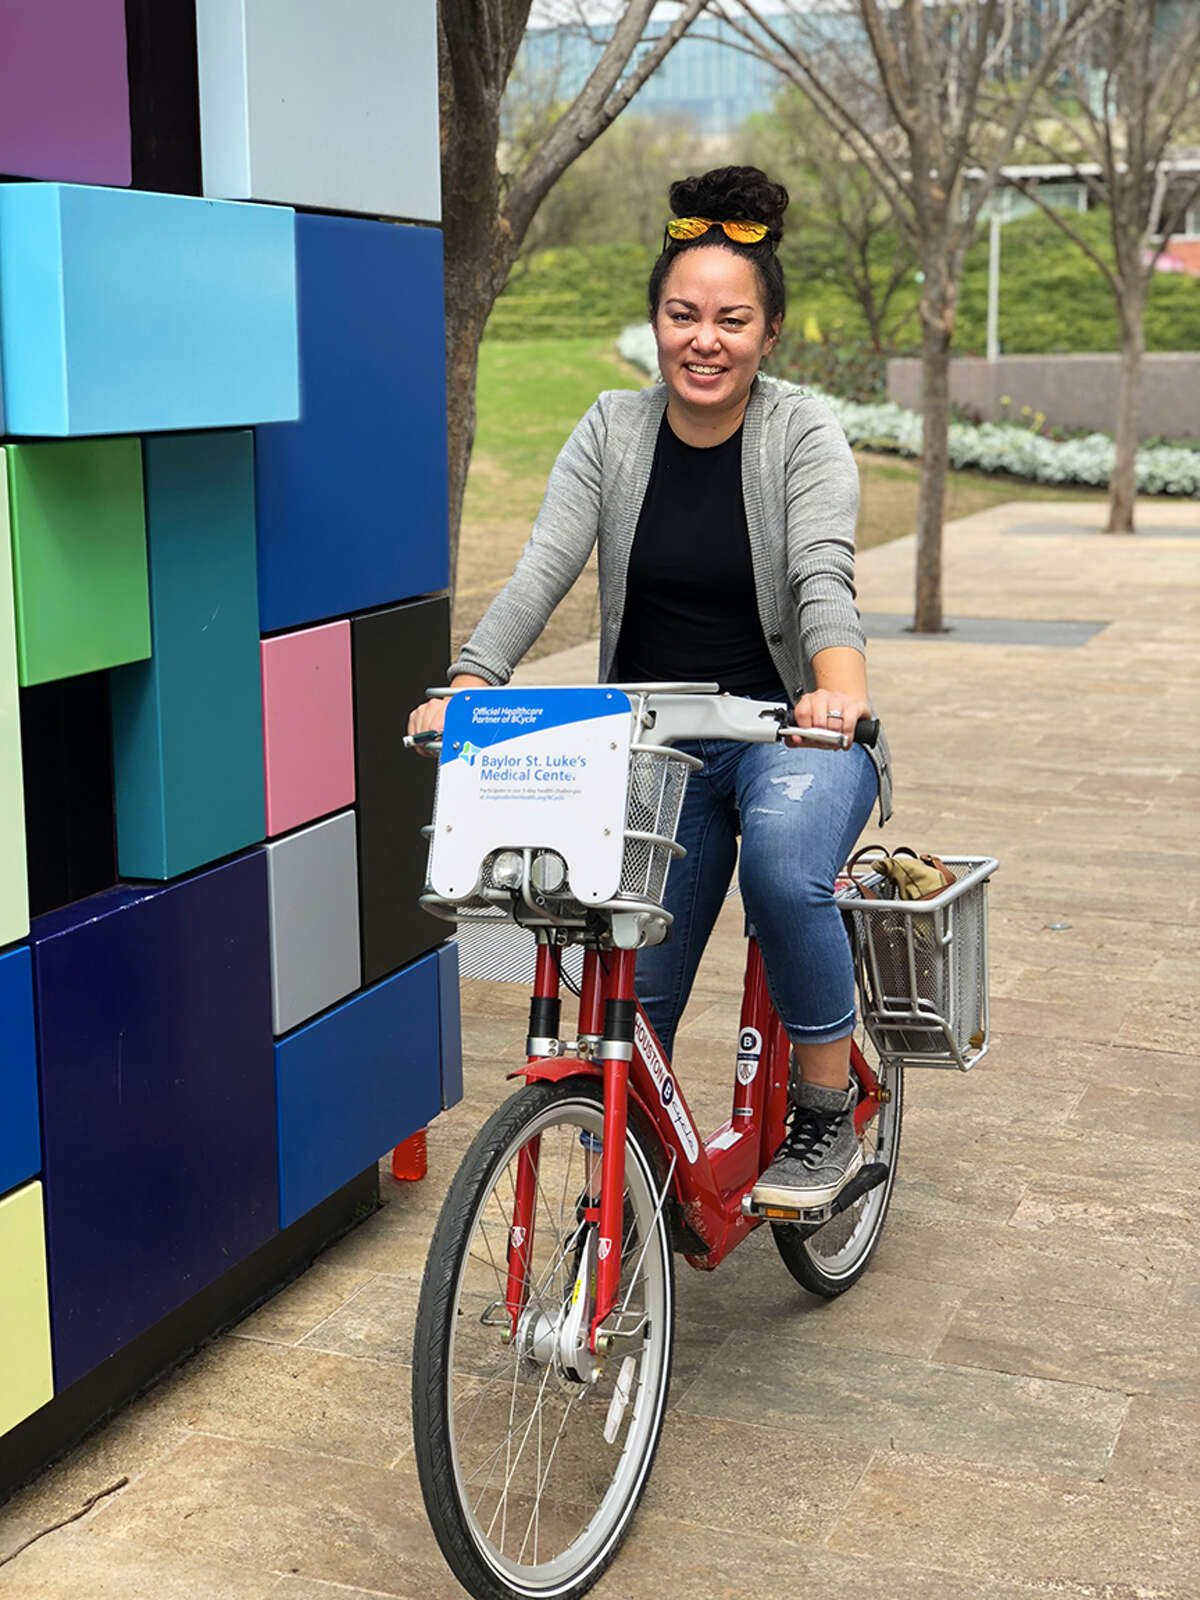 Houston Bike Share team has named Beth Martin as its new executive director.